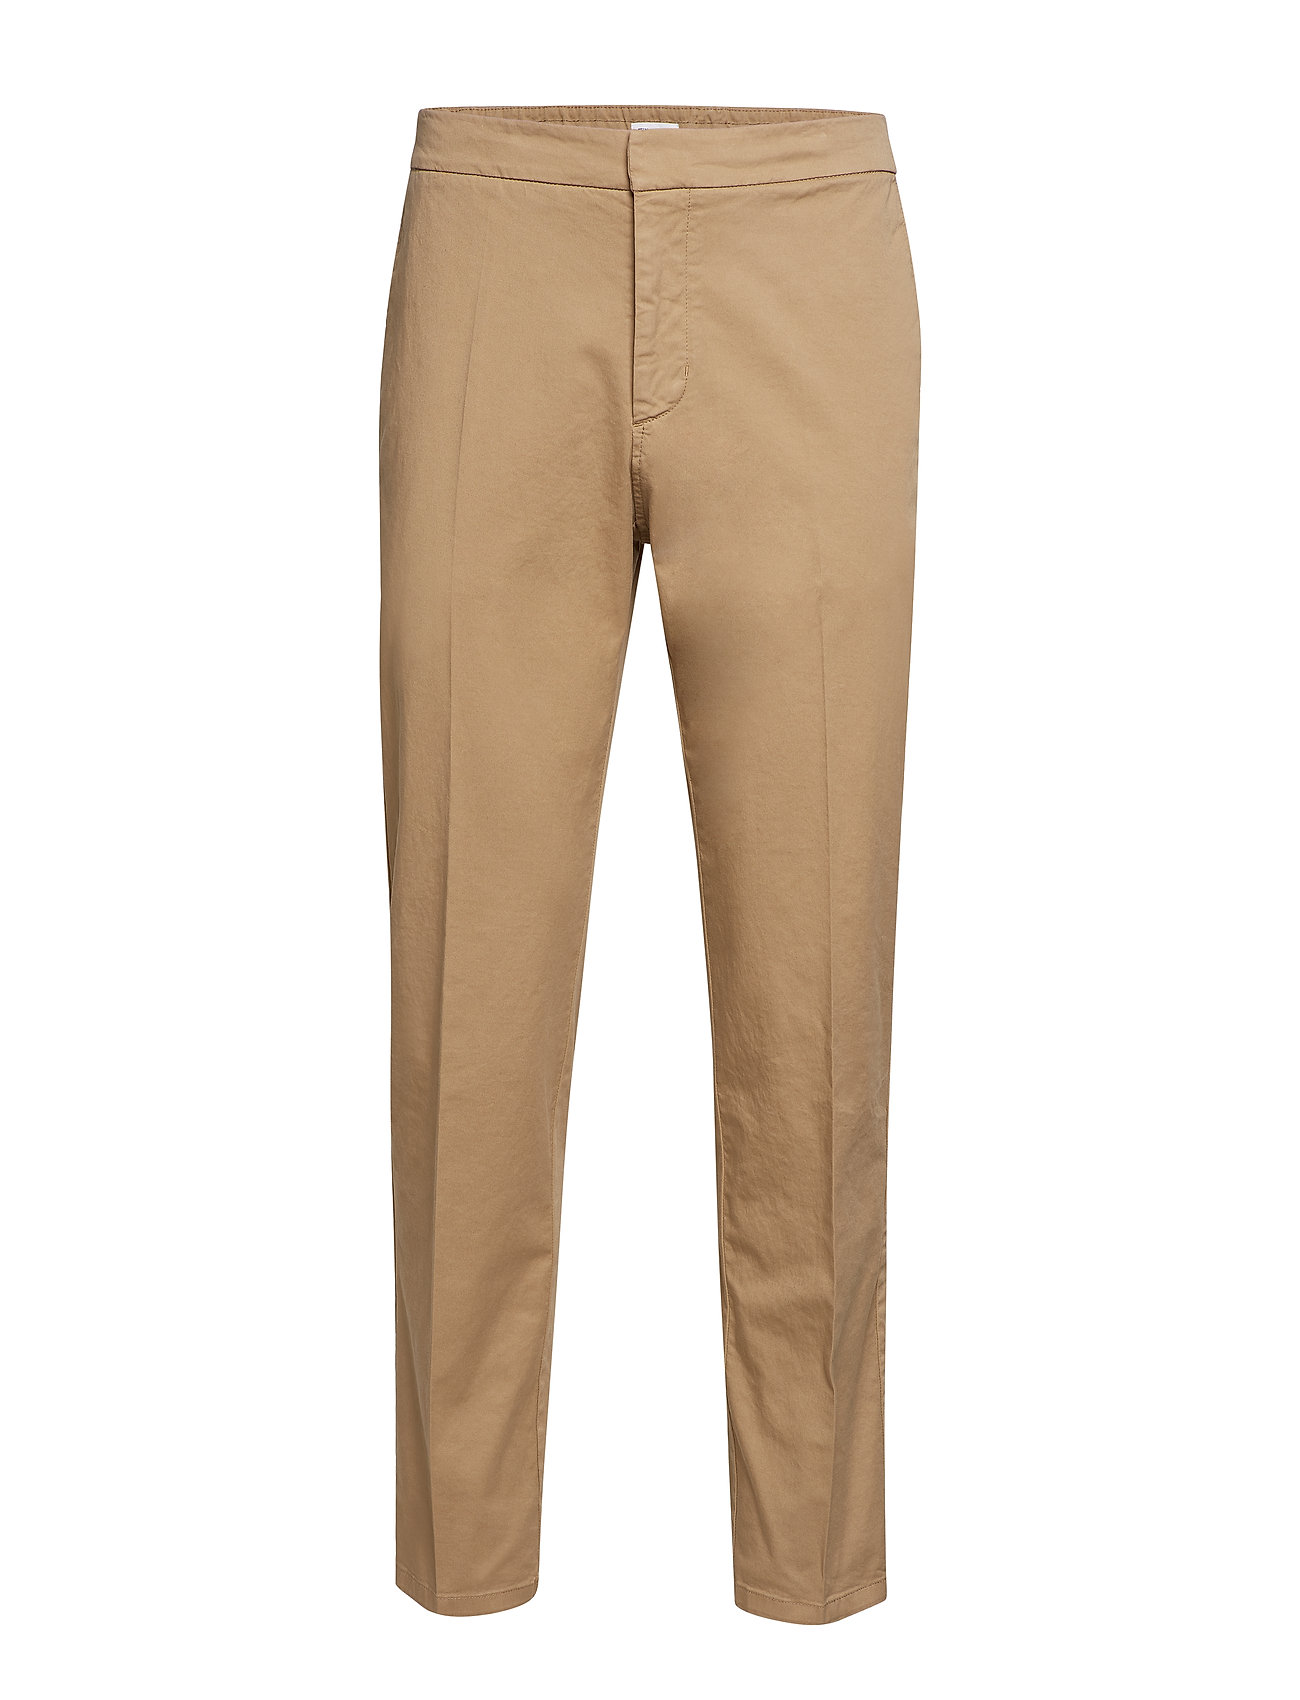 Filippa K M. Toby Cotton Chino - KHAKI BEIG